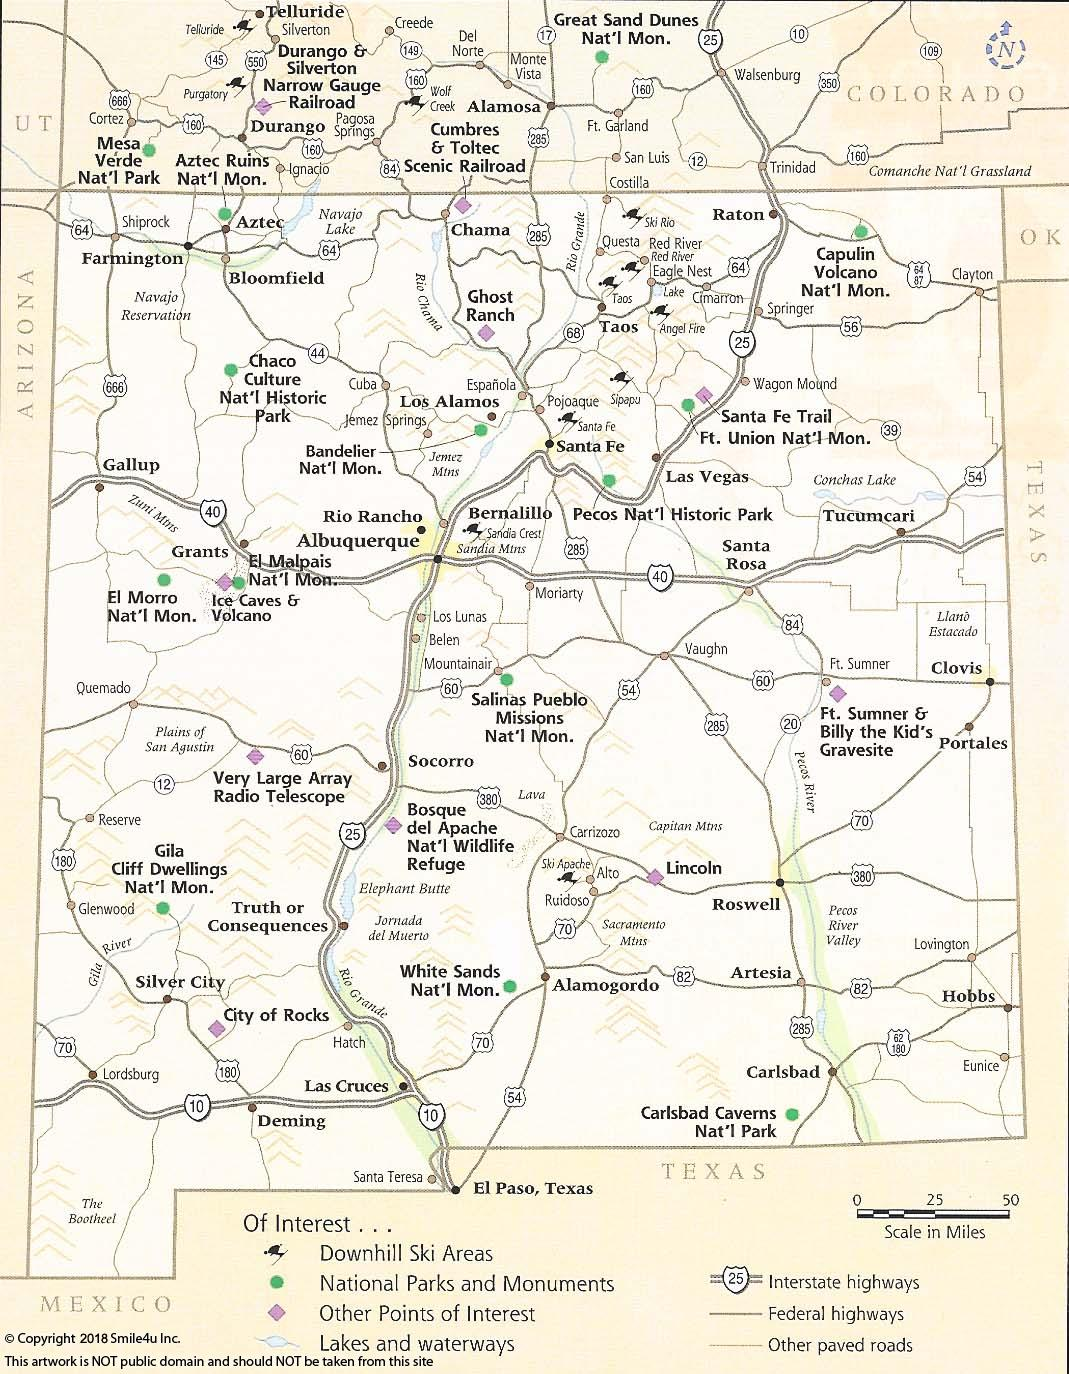 838369_watermarked_New Mexico State Map .jpg